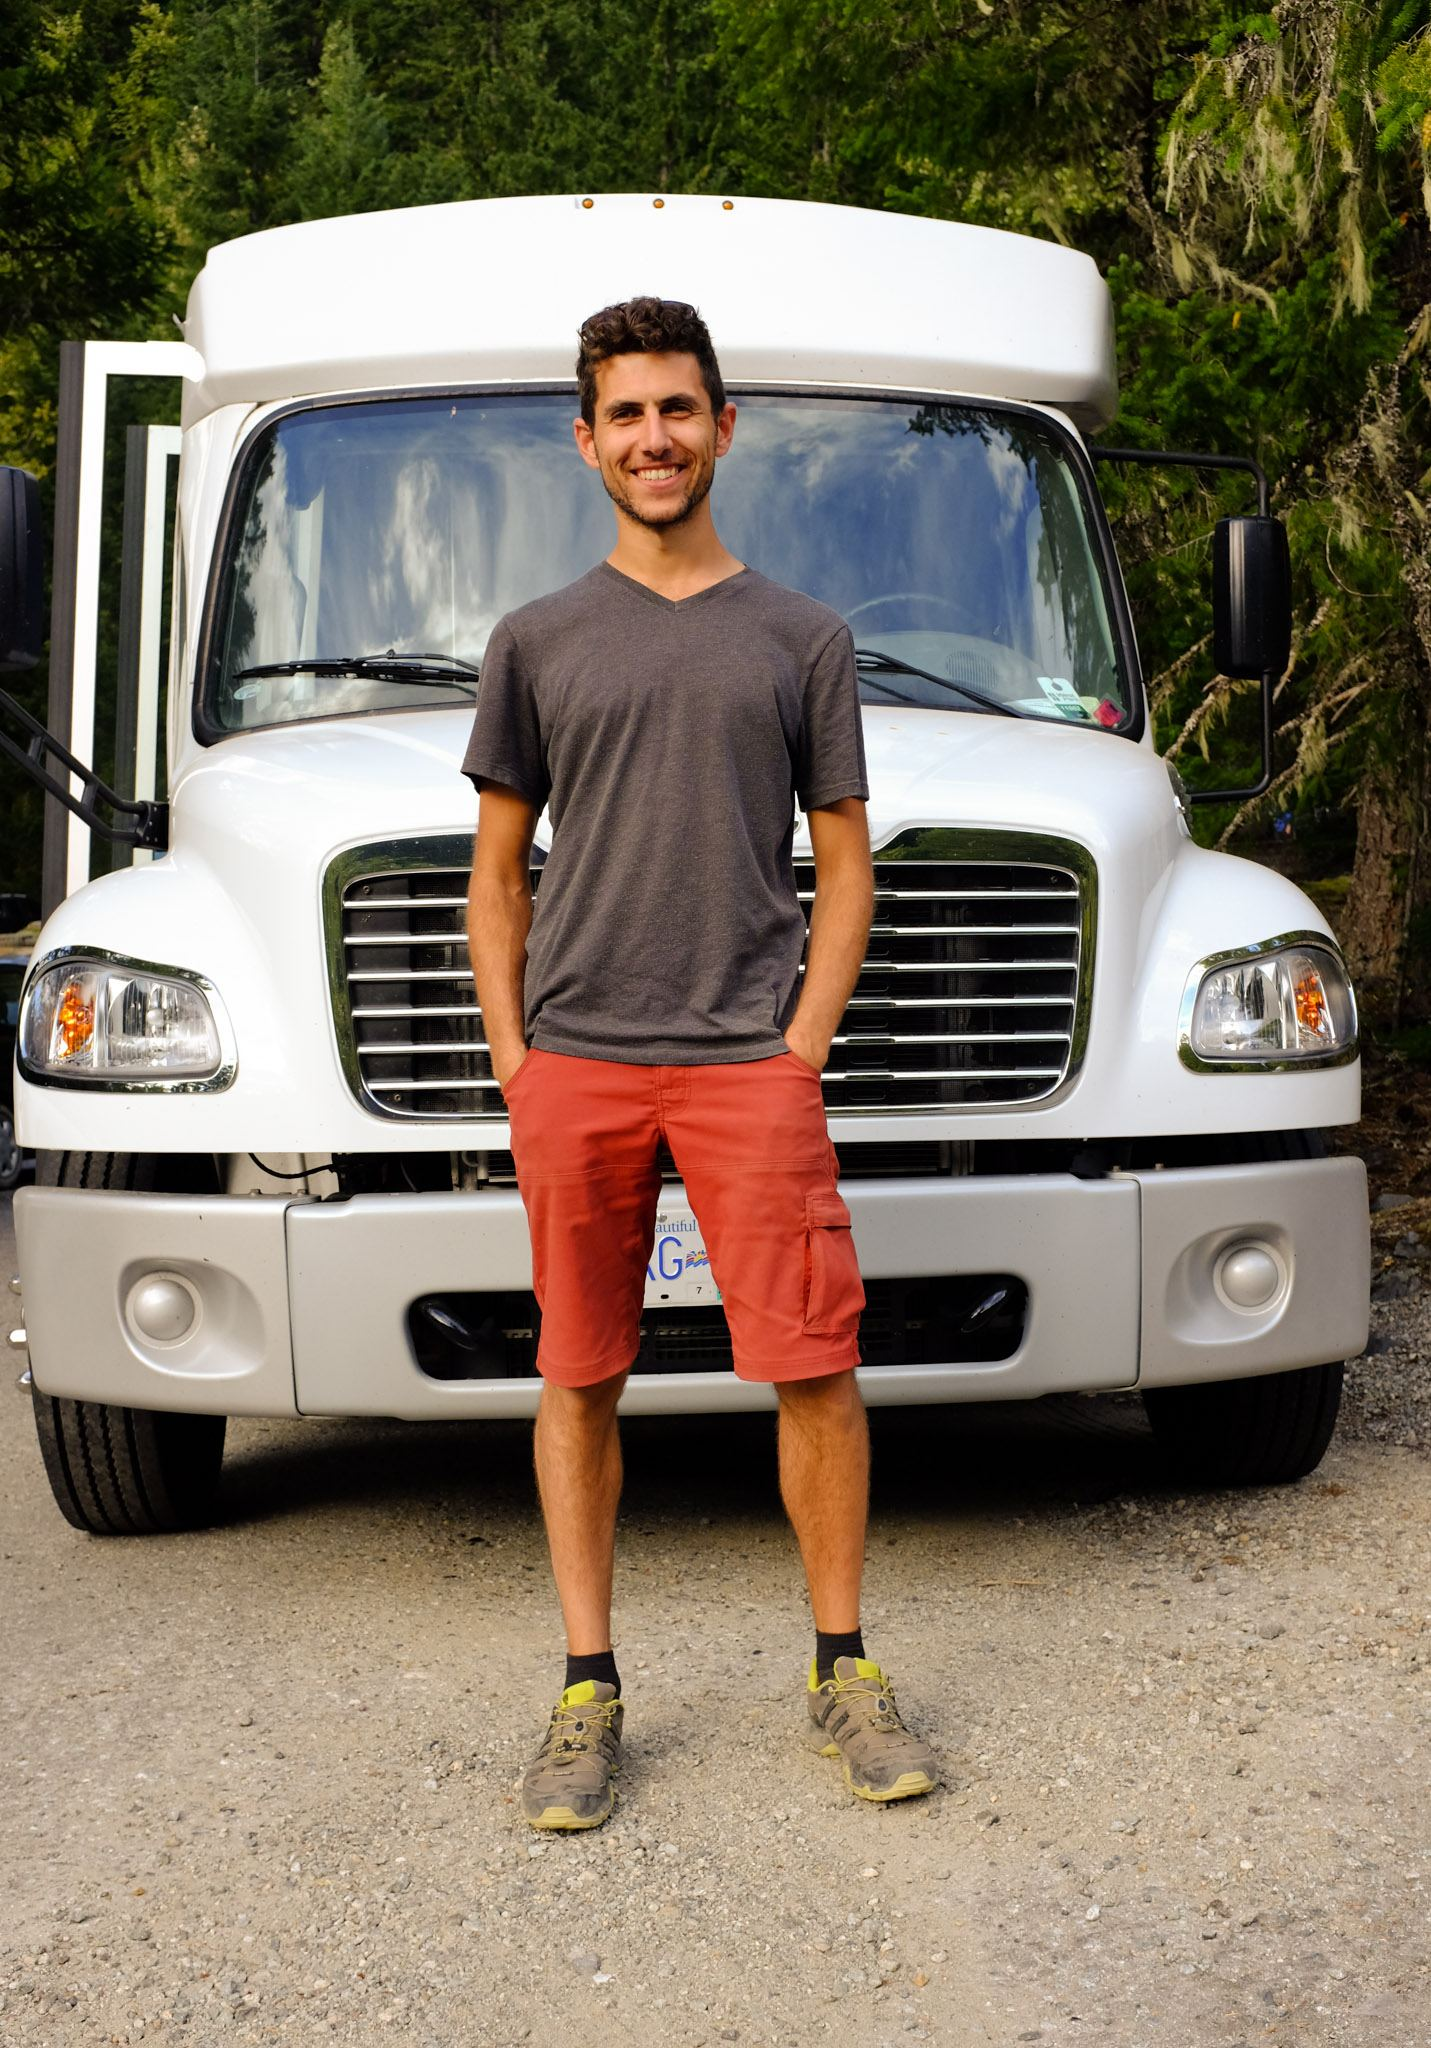 Parkbus co-founder Alex Z. Berlyand (Conrad Olson)